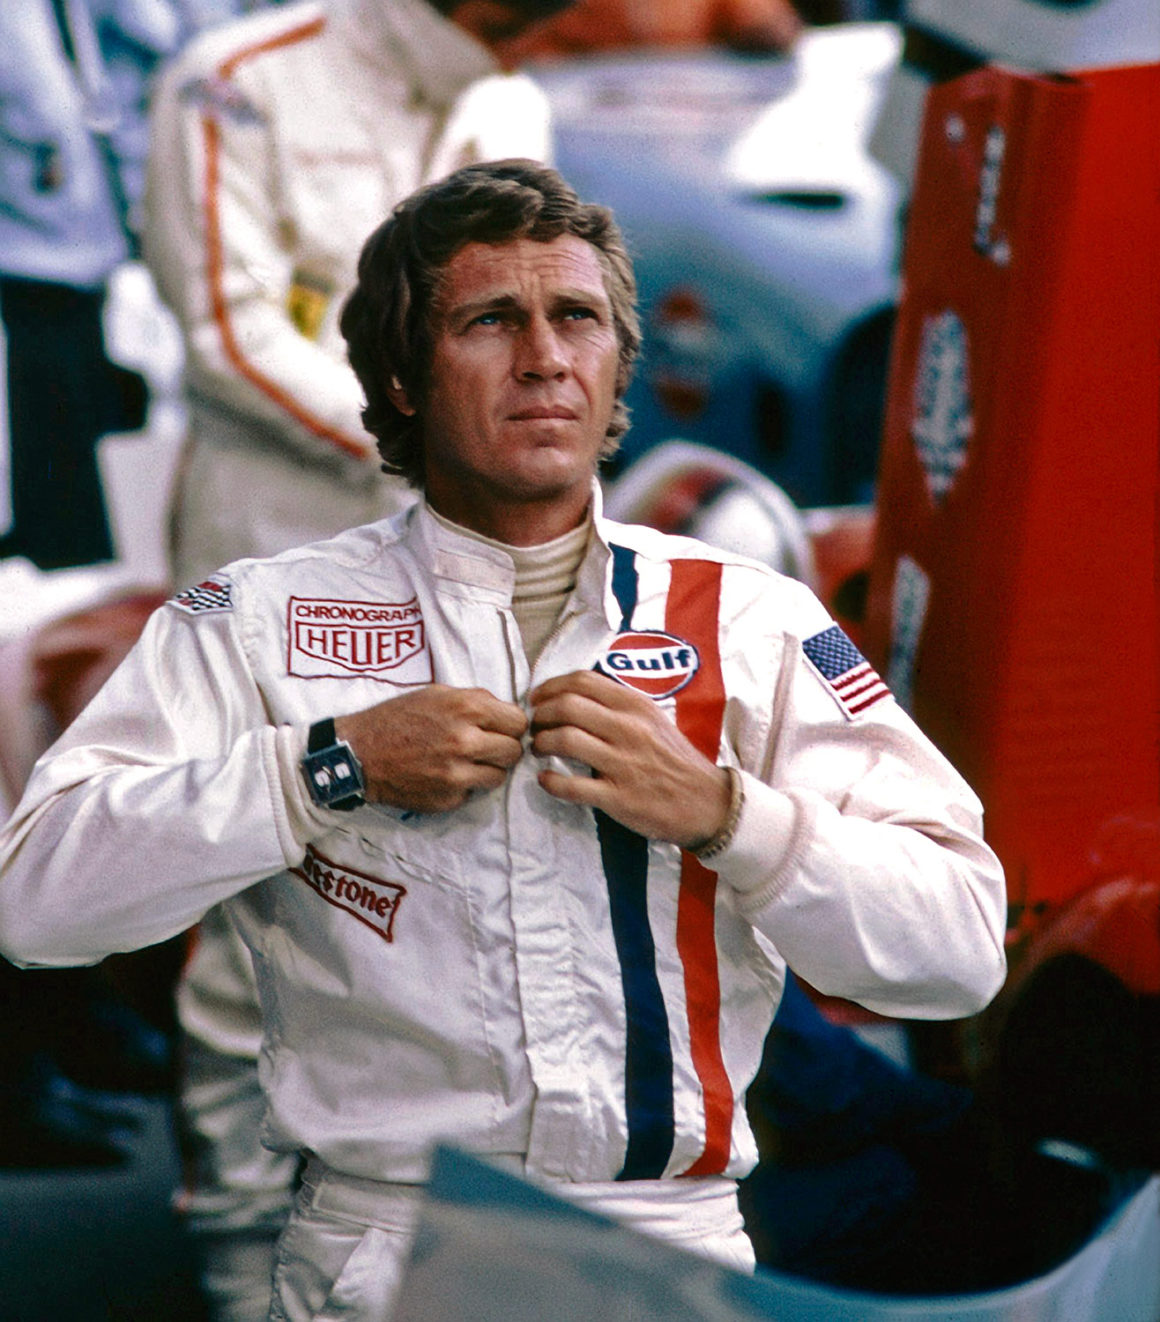 life of Steve McQueen Tag Heuer